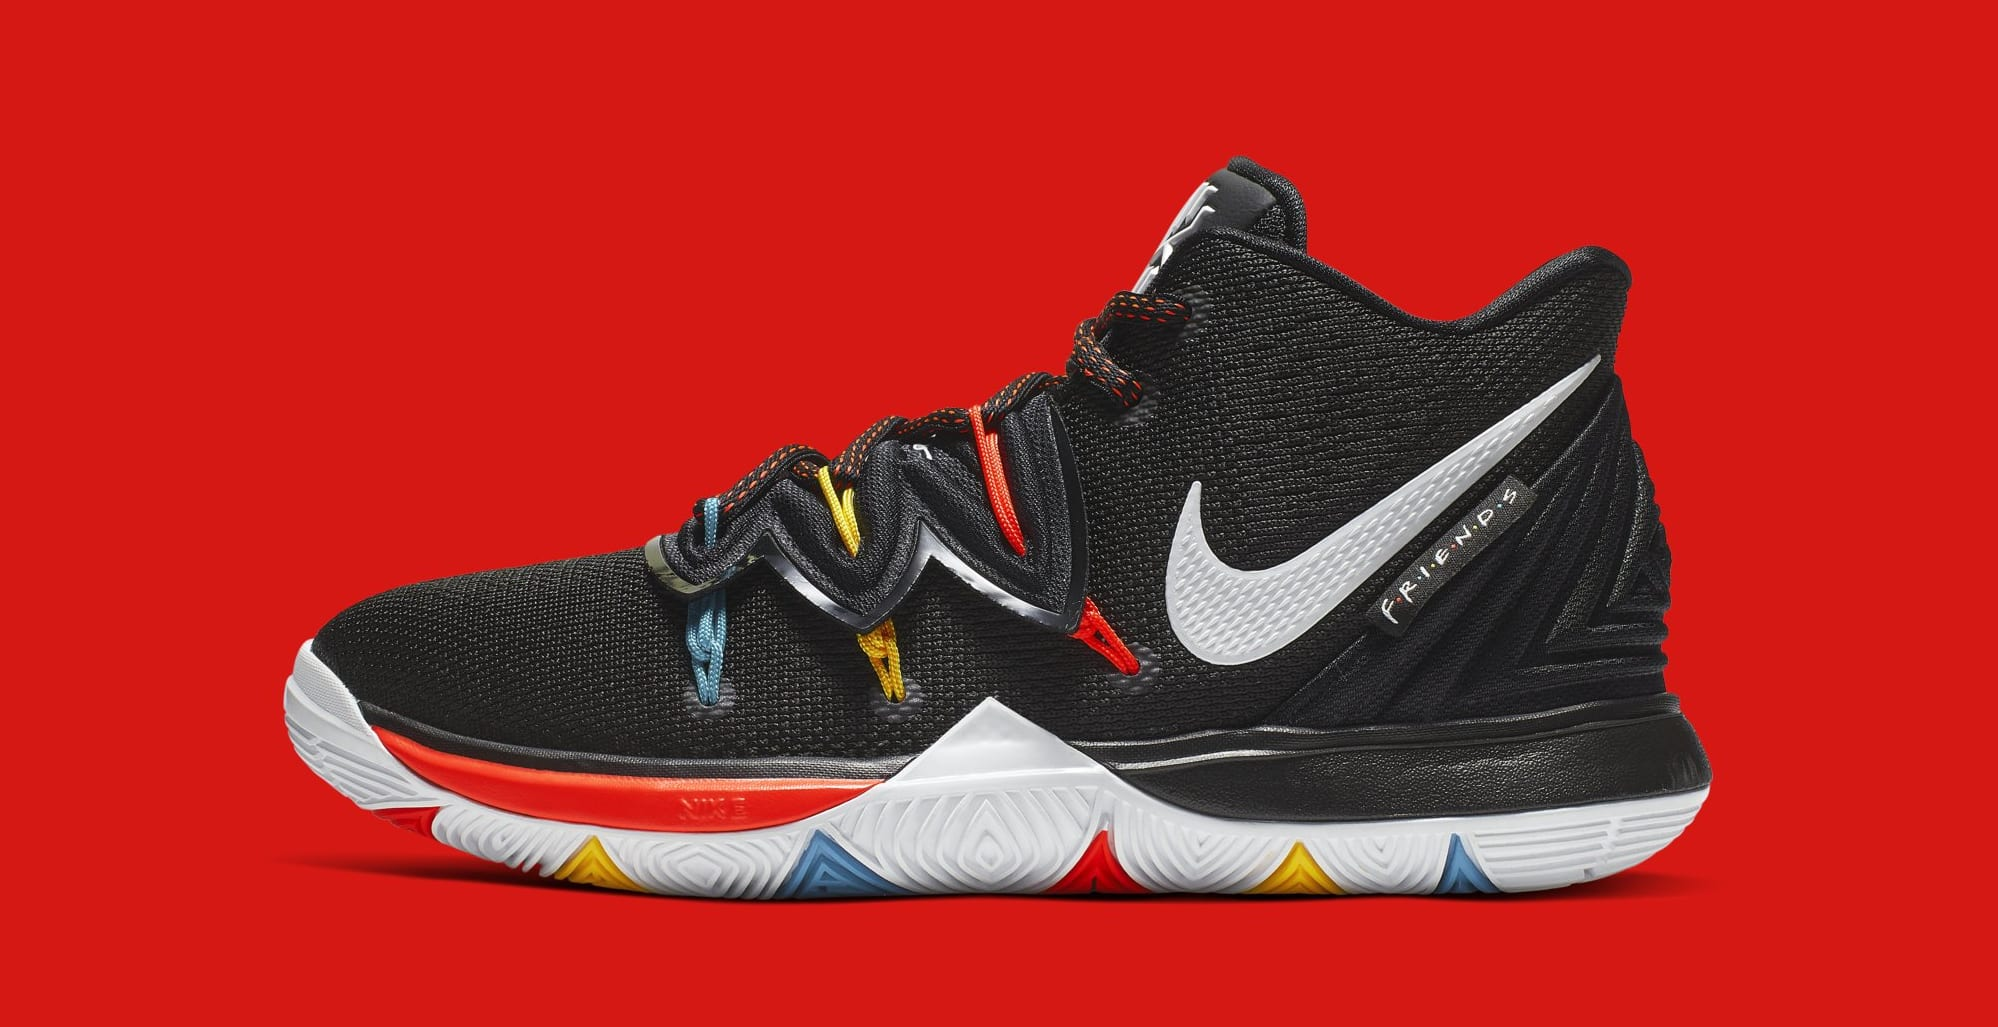 Nike Kyrie 5 'Friends' AQ2456-006 (Lateral)